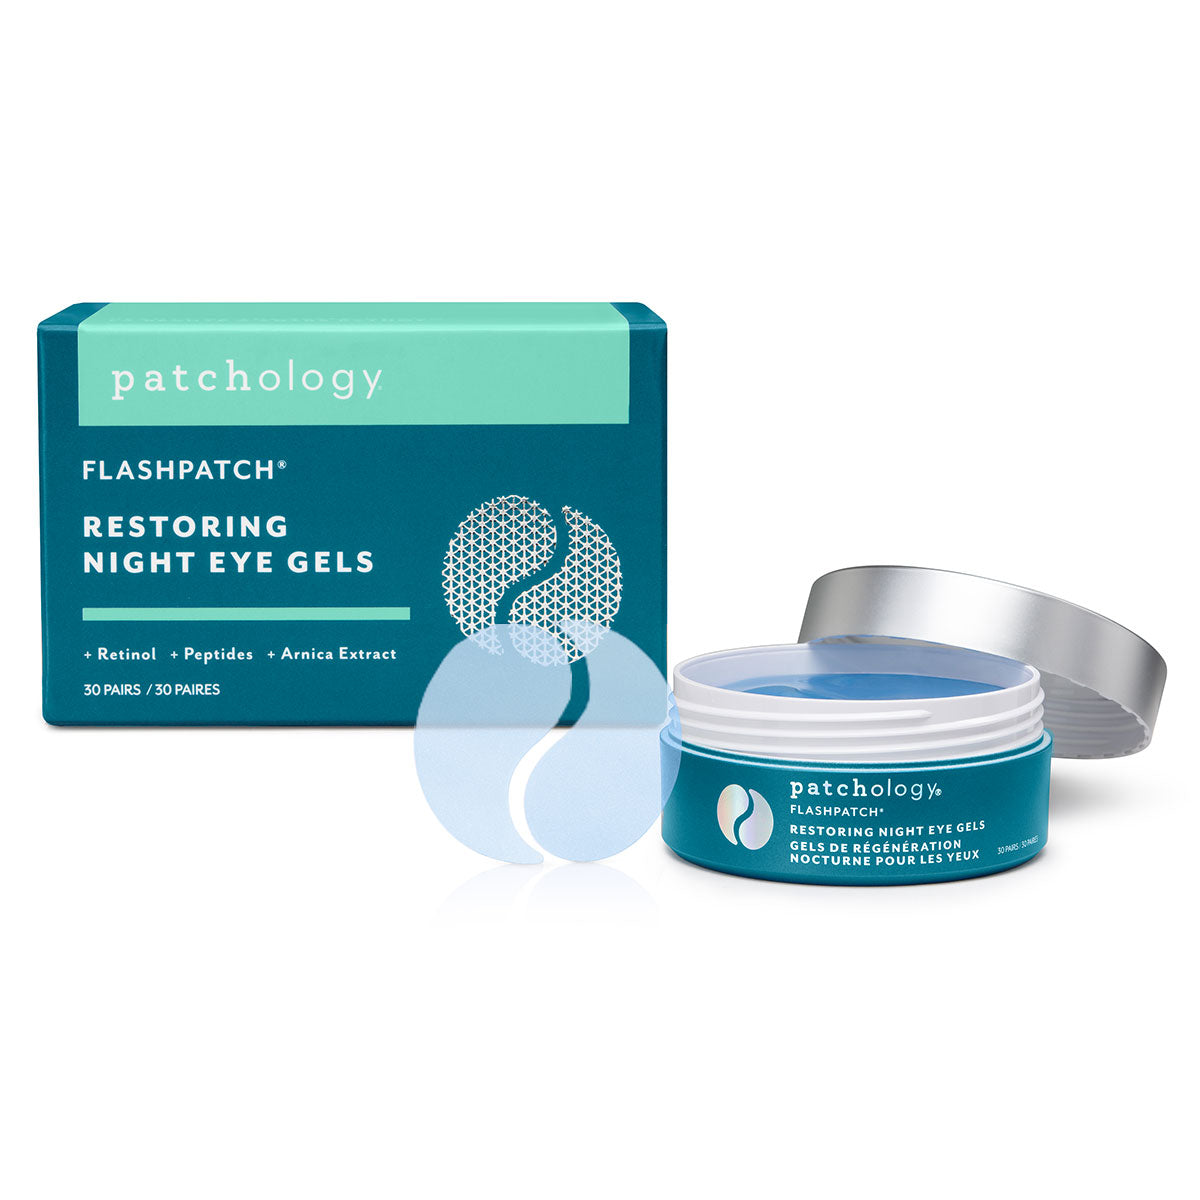 FlashPatch¨ Restoring Night Eye Gels